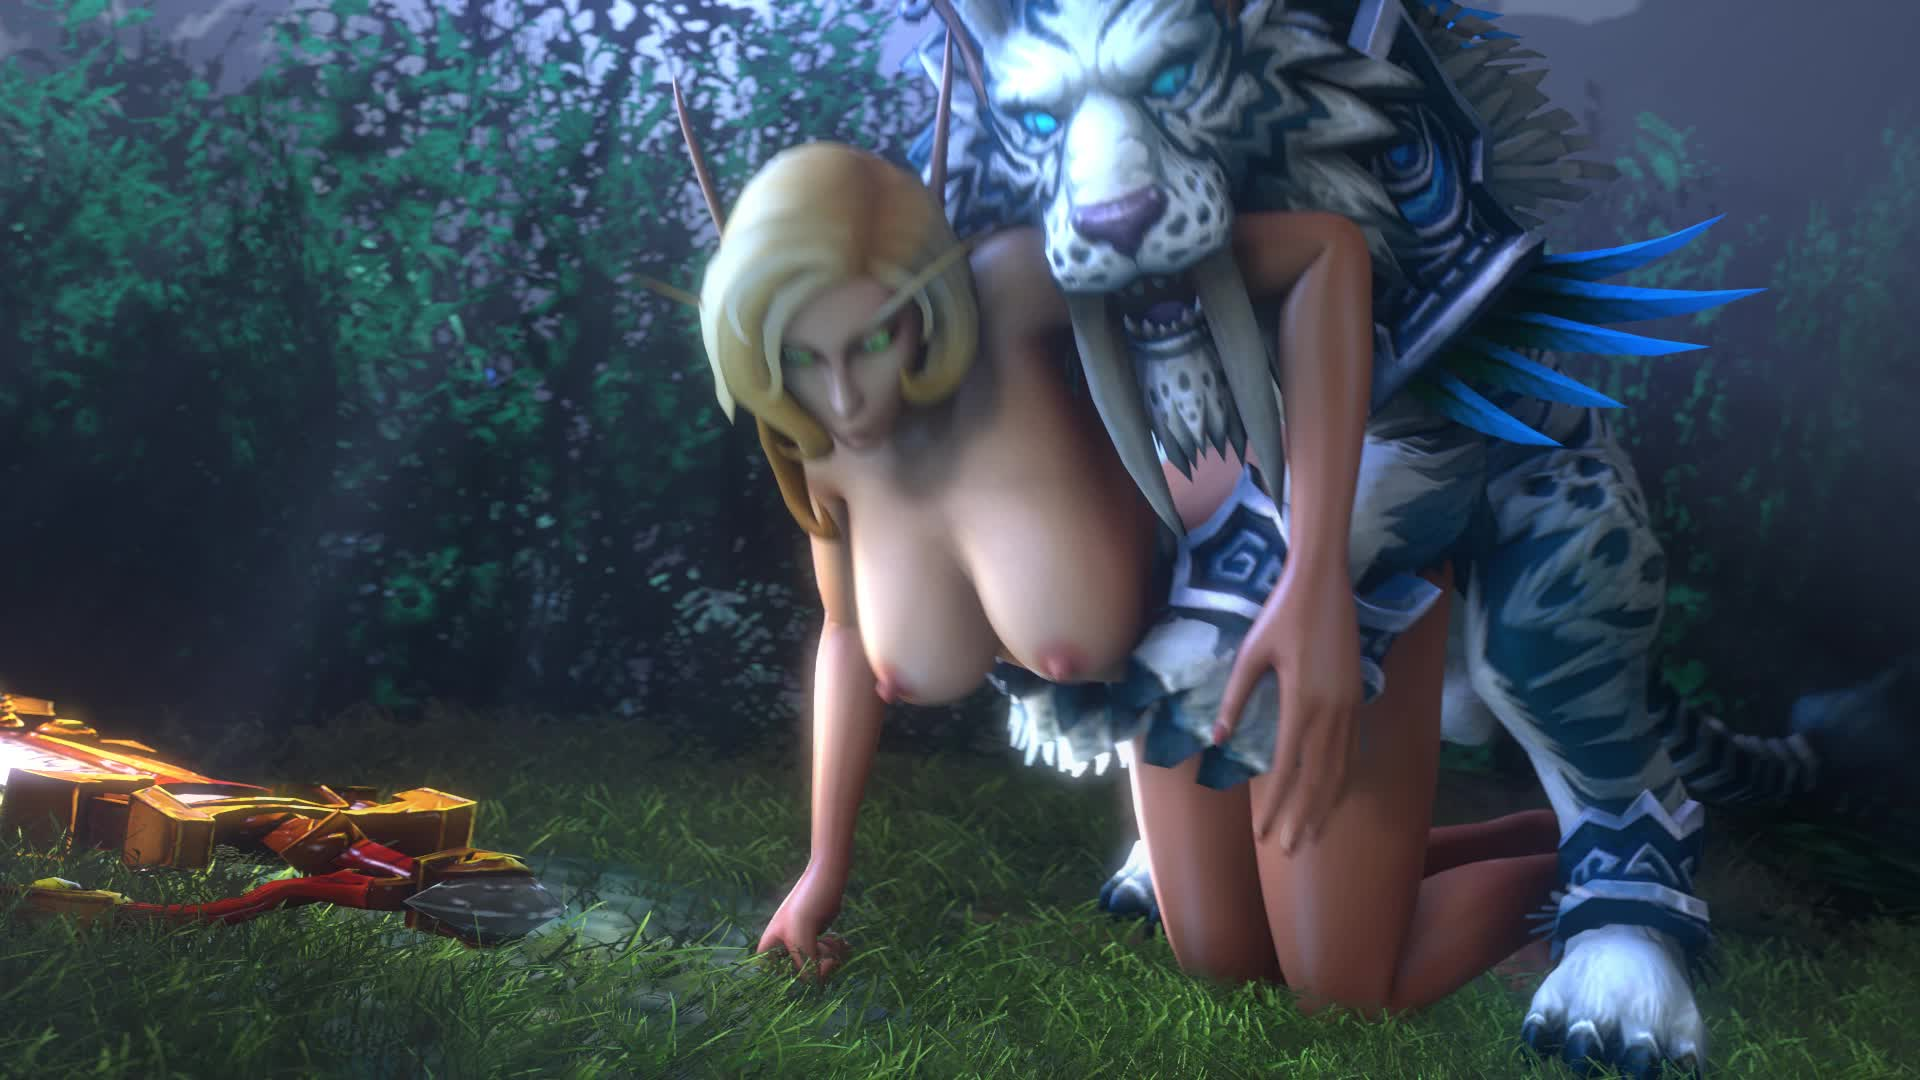 Warcraft blond girl fucks elf adult film